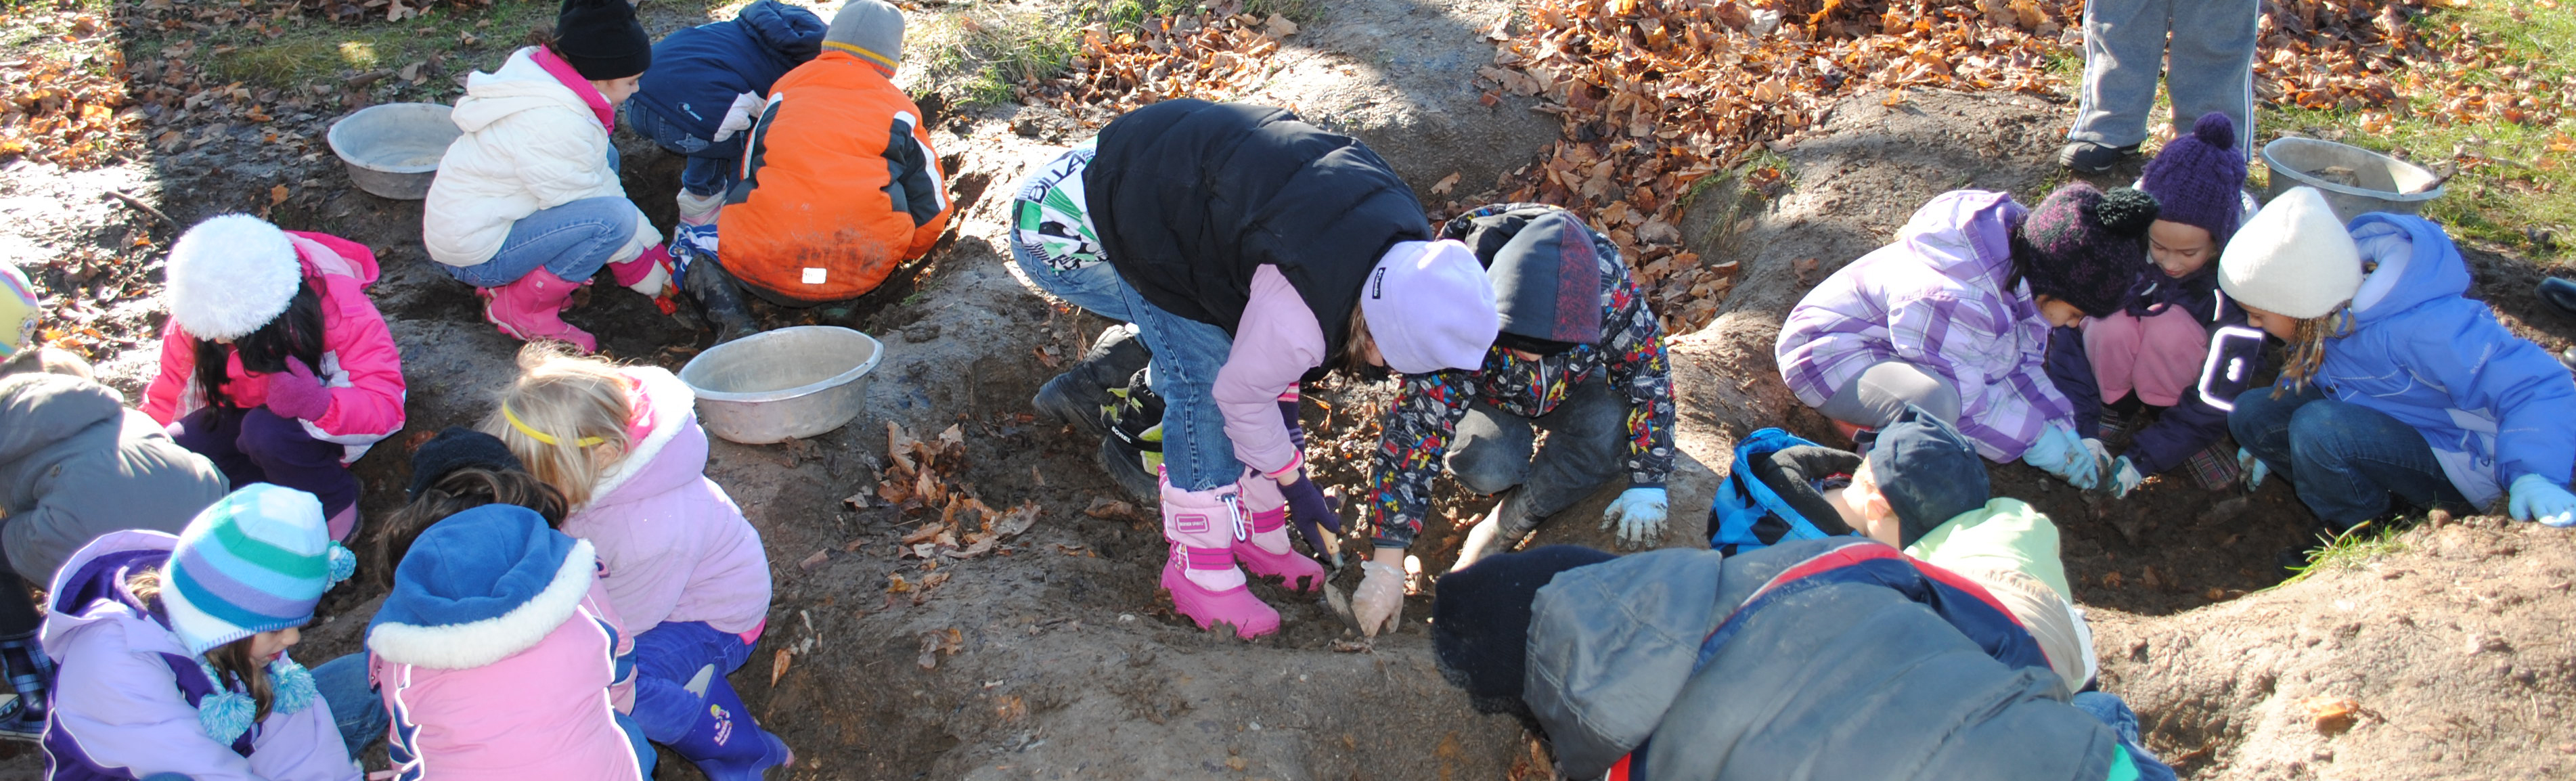 Children learning about archaeology excavation